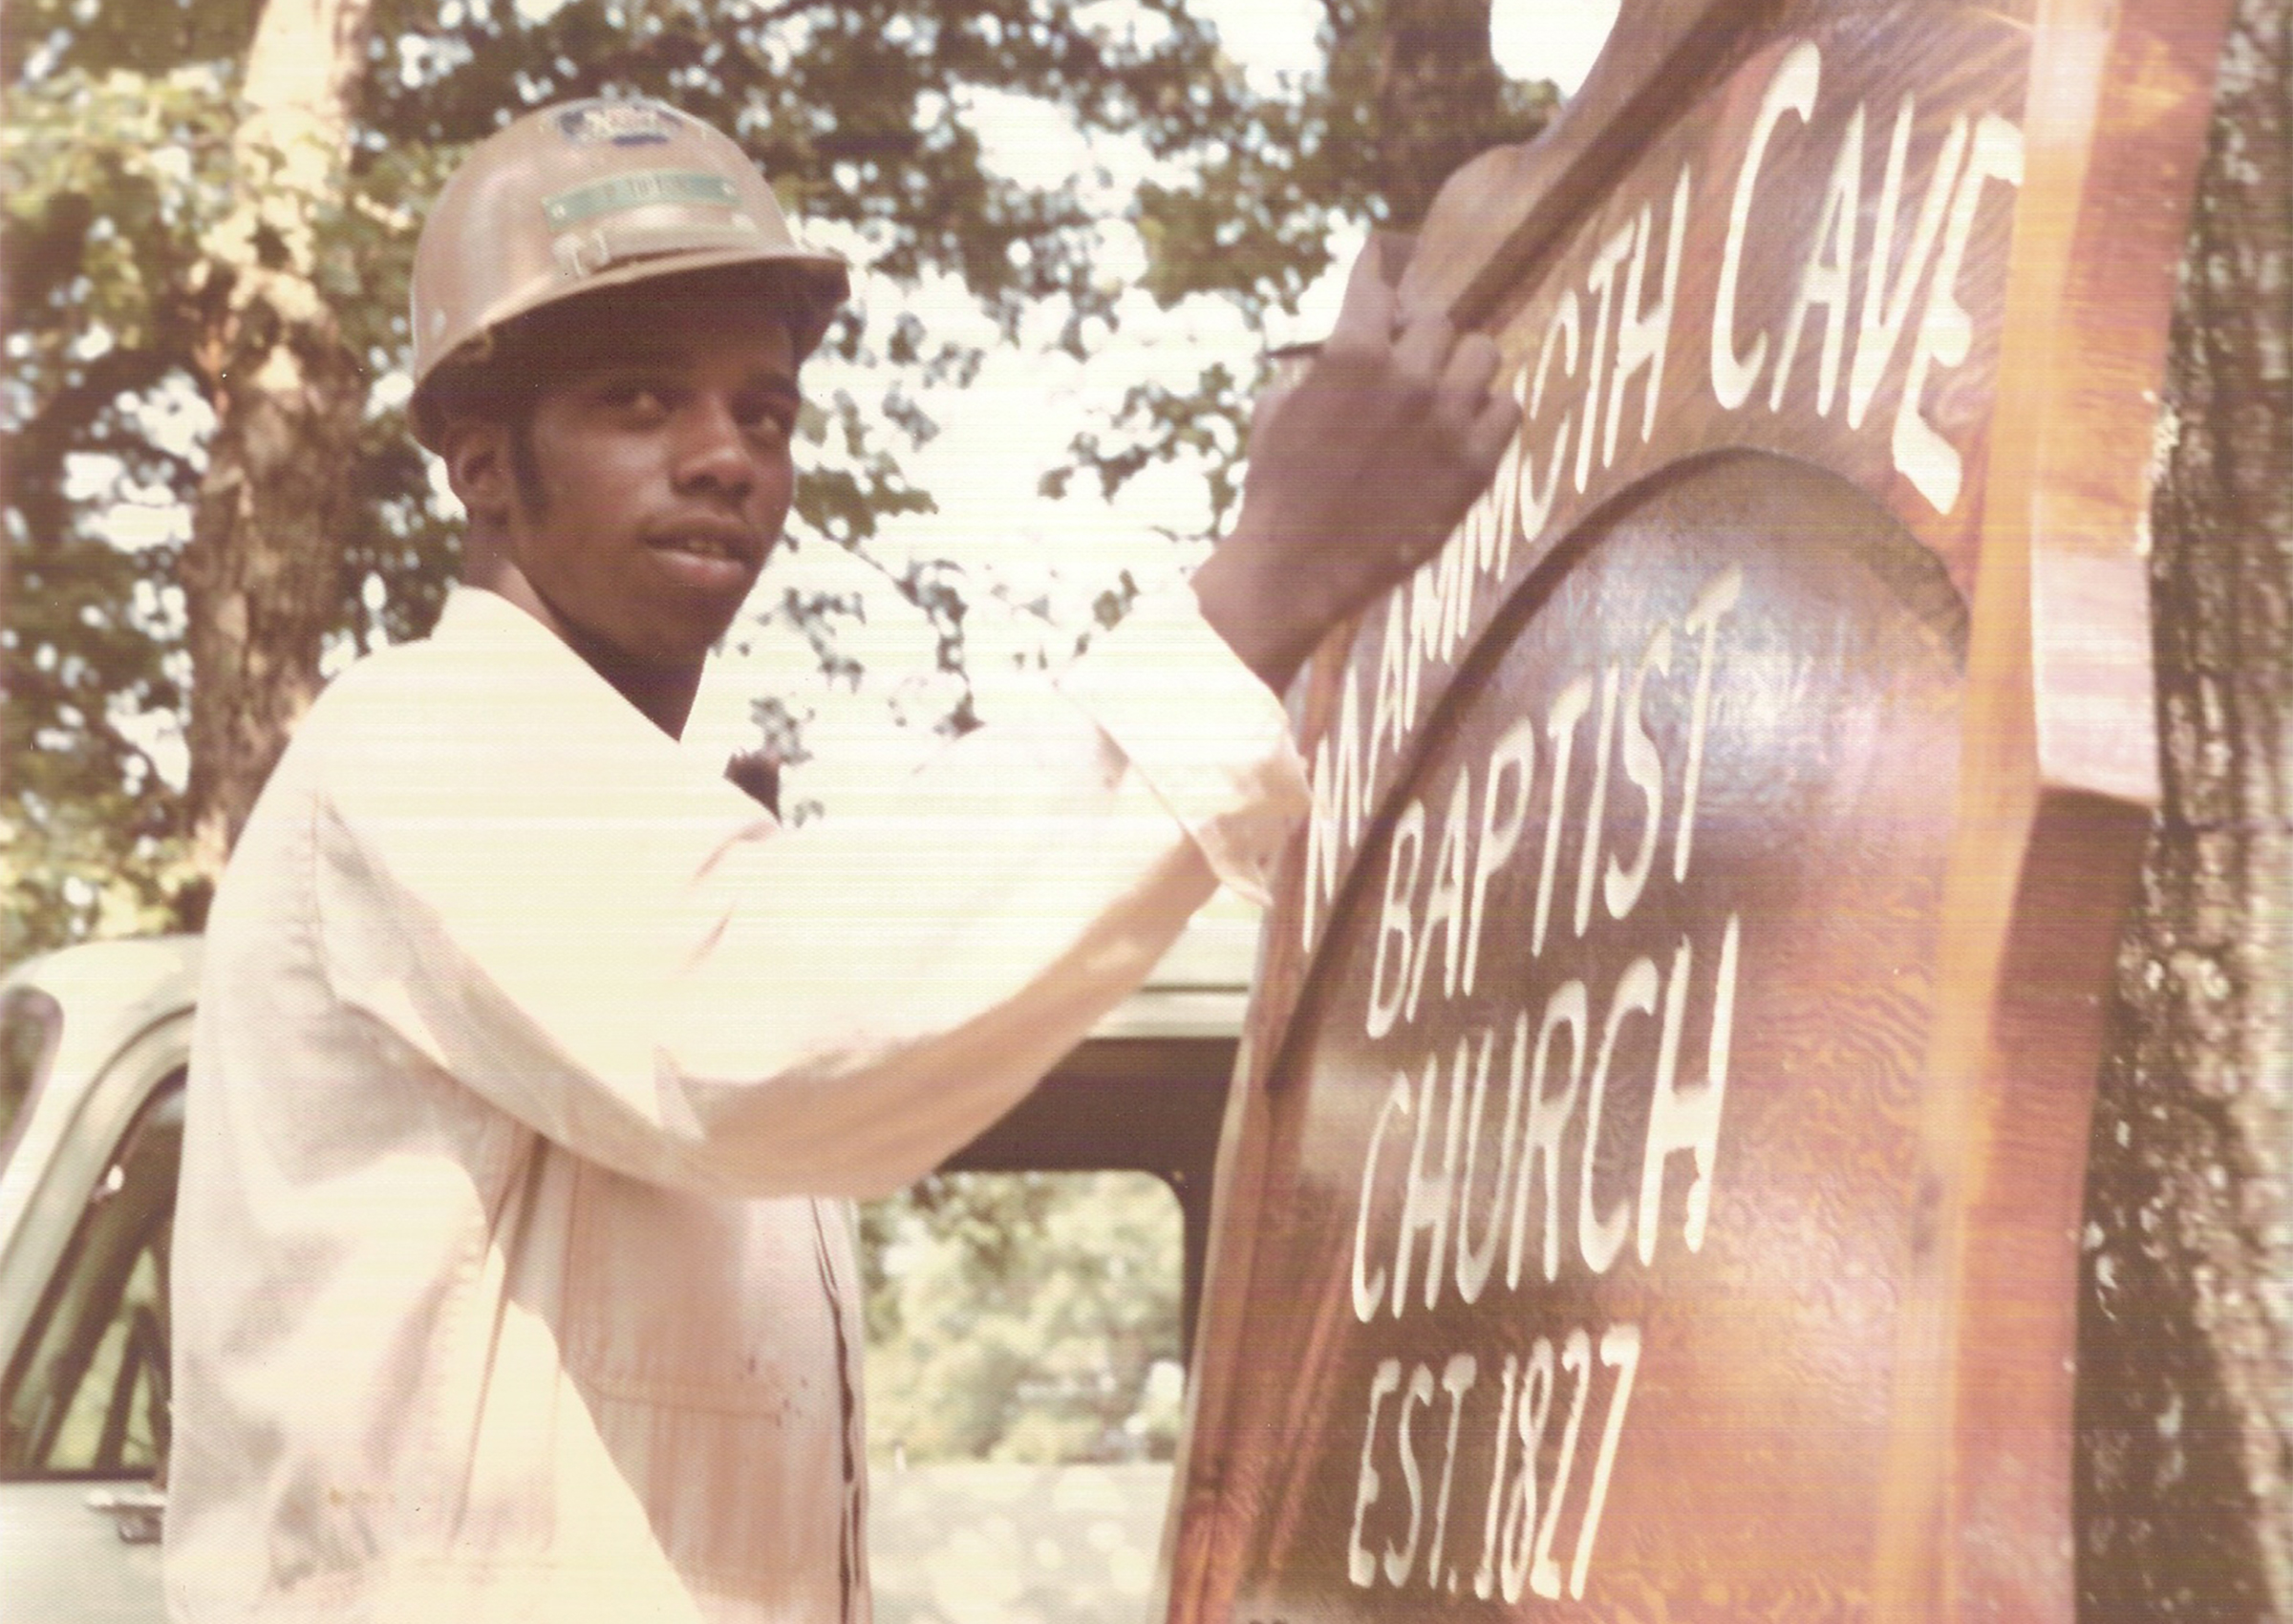 A Great Onyx Job Corps student paints a sign for a local church